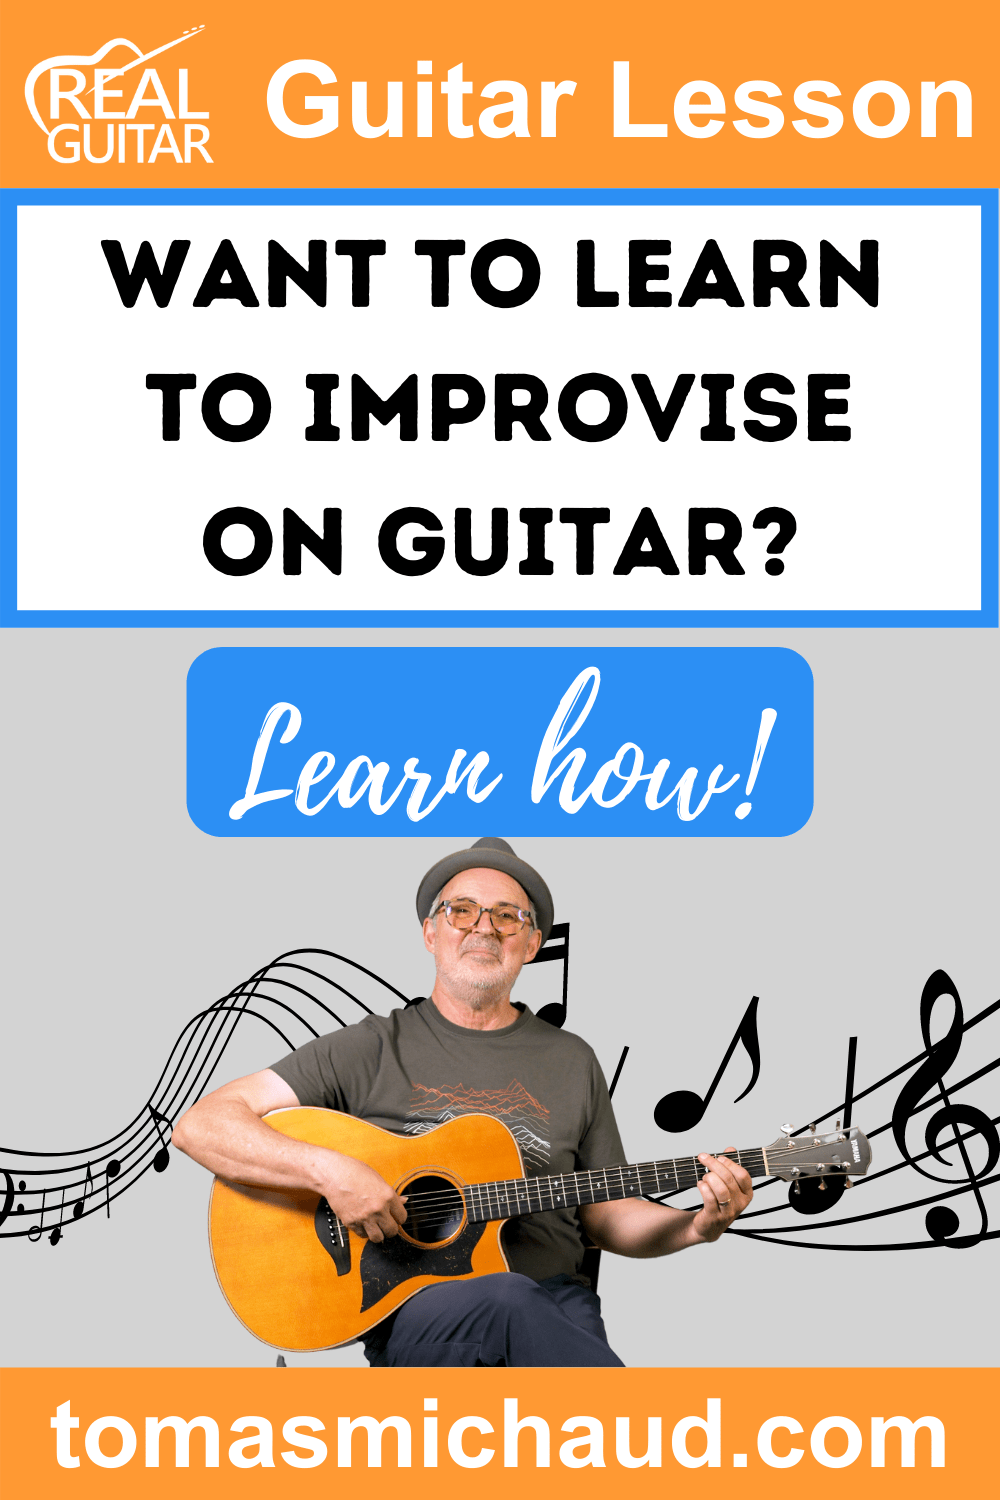 Want to Learn to Improvise on Guitar